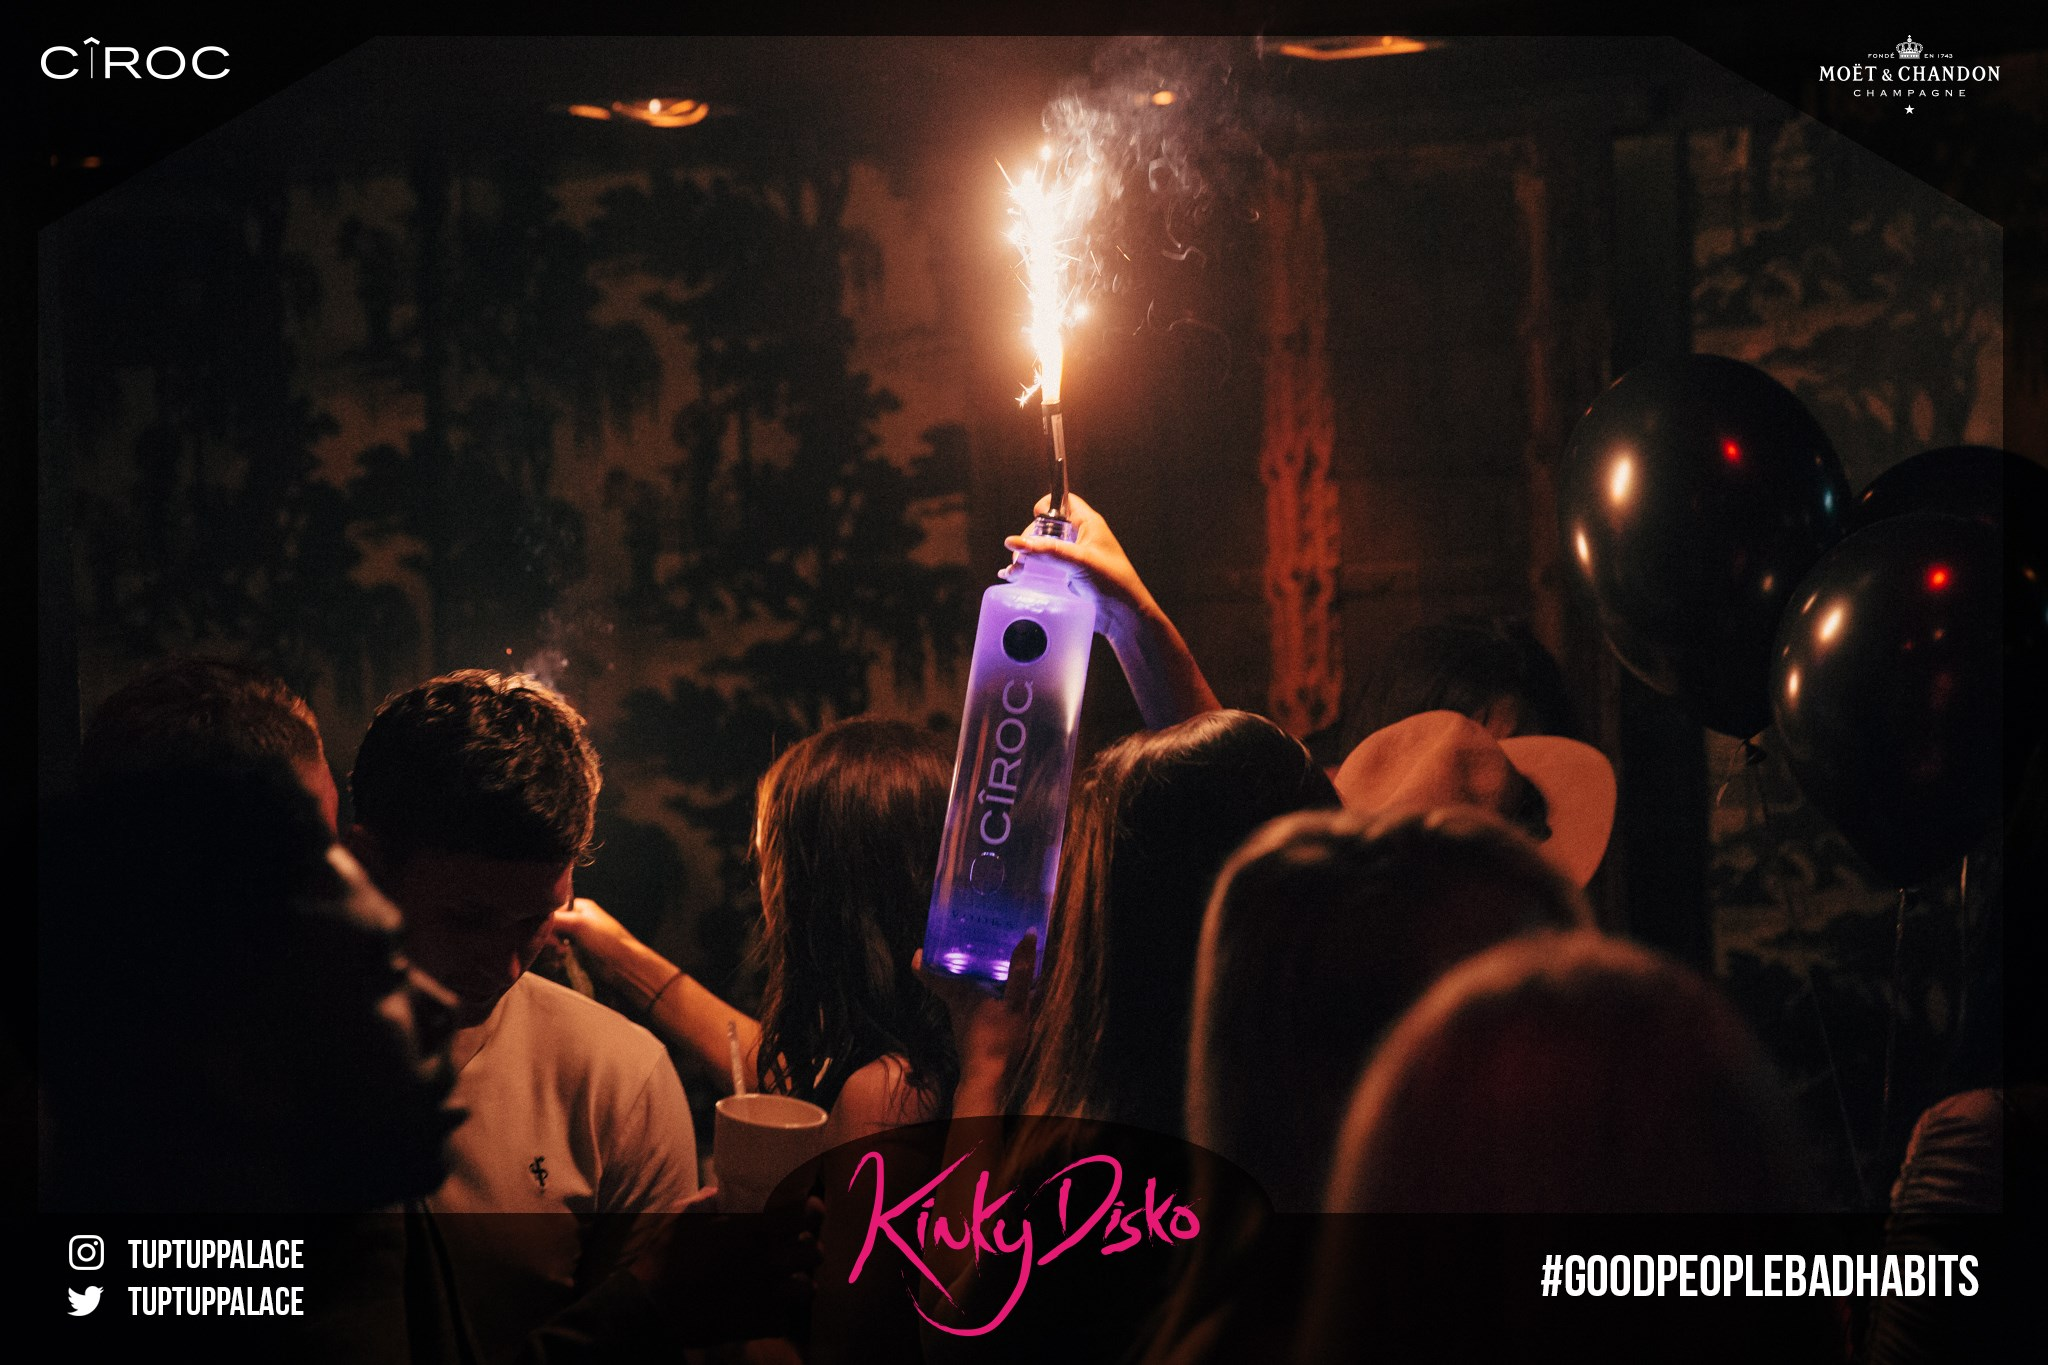 Someone holding a bottle with a sparkler in Tub Tup nightclub, where many celebrity nights out in Newcastle take place